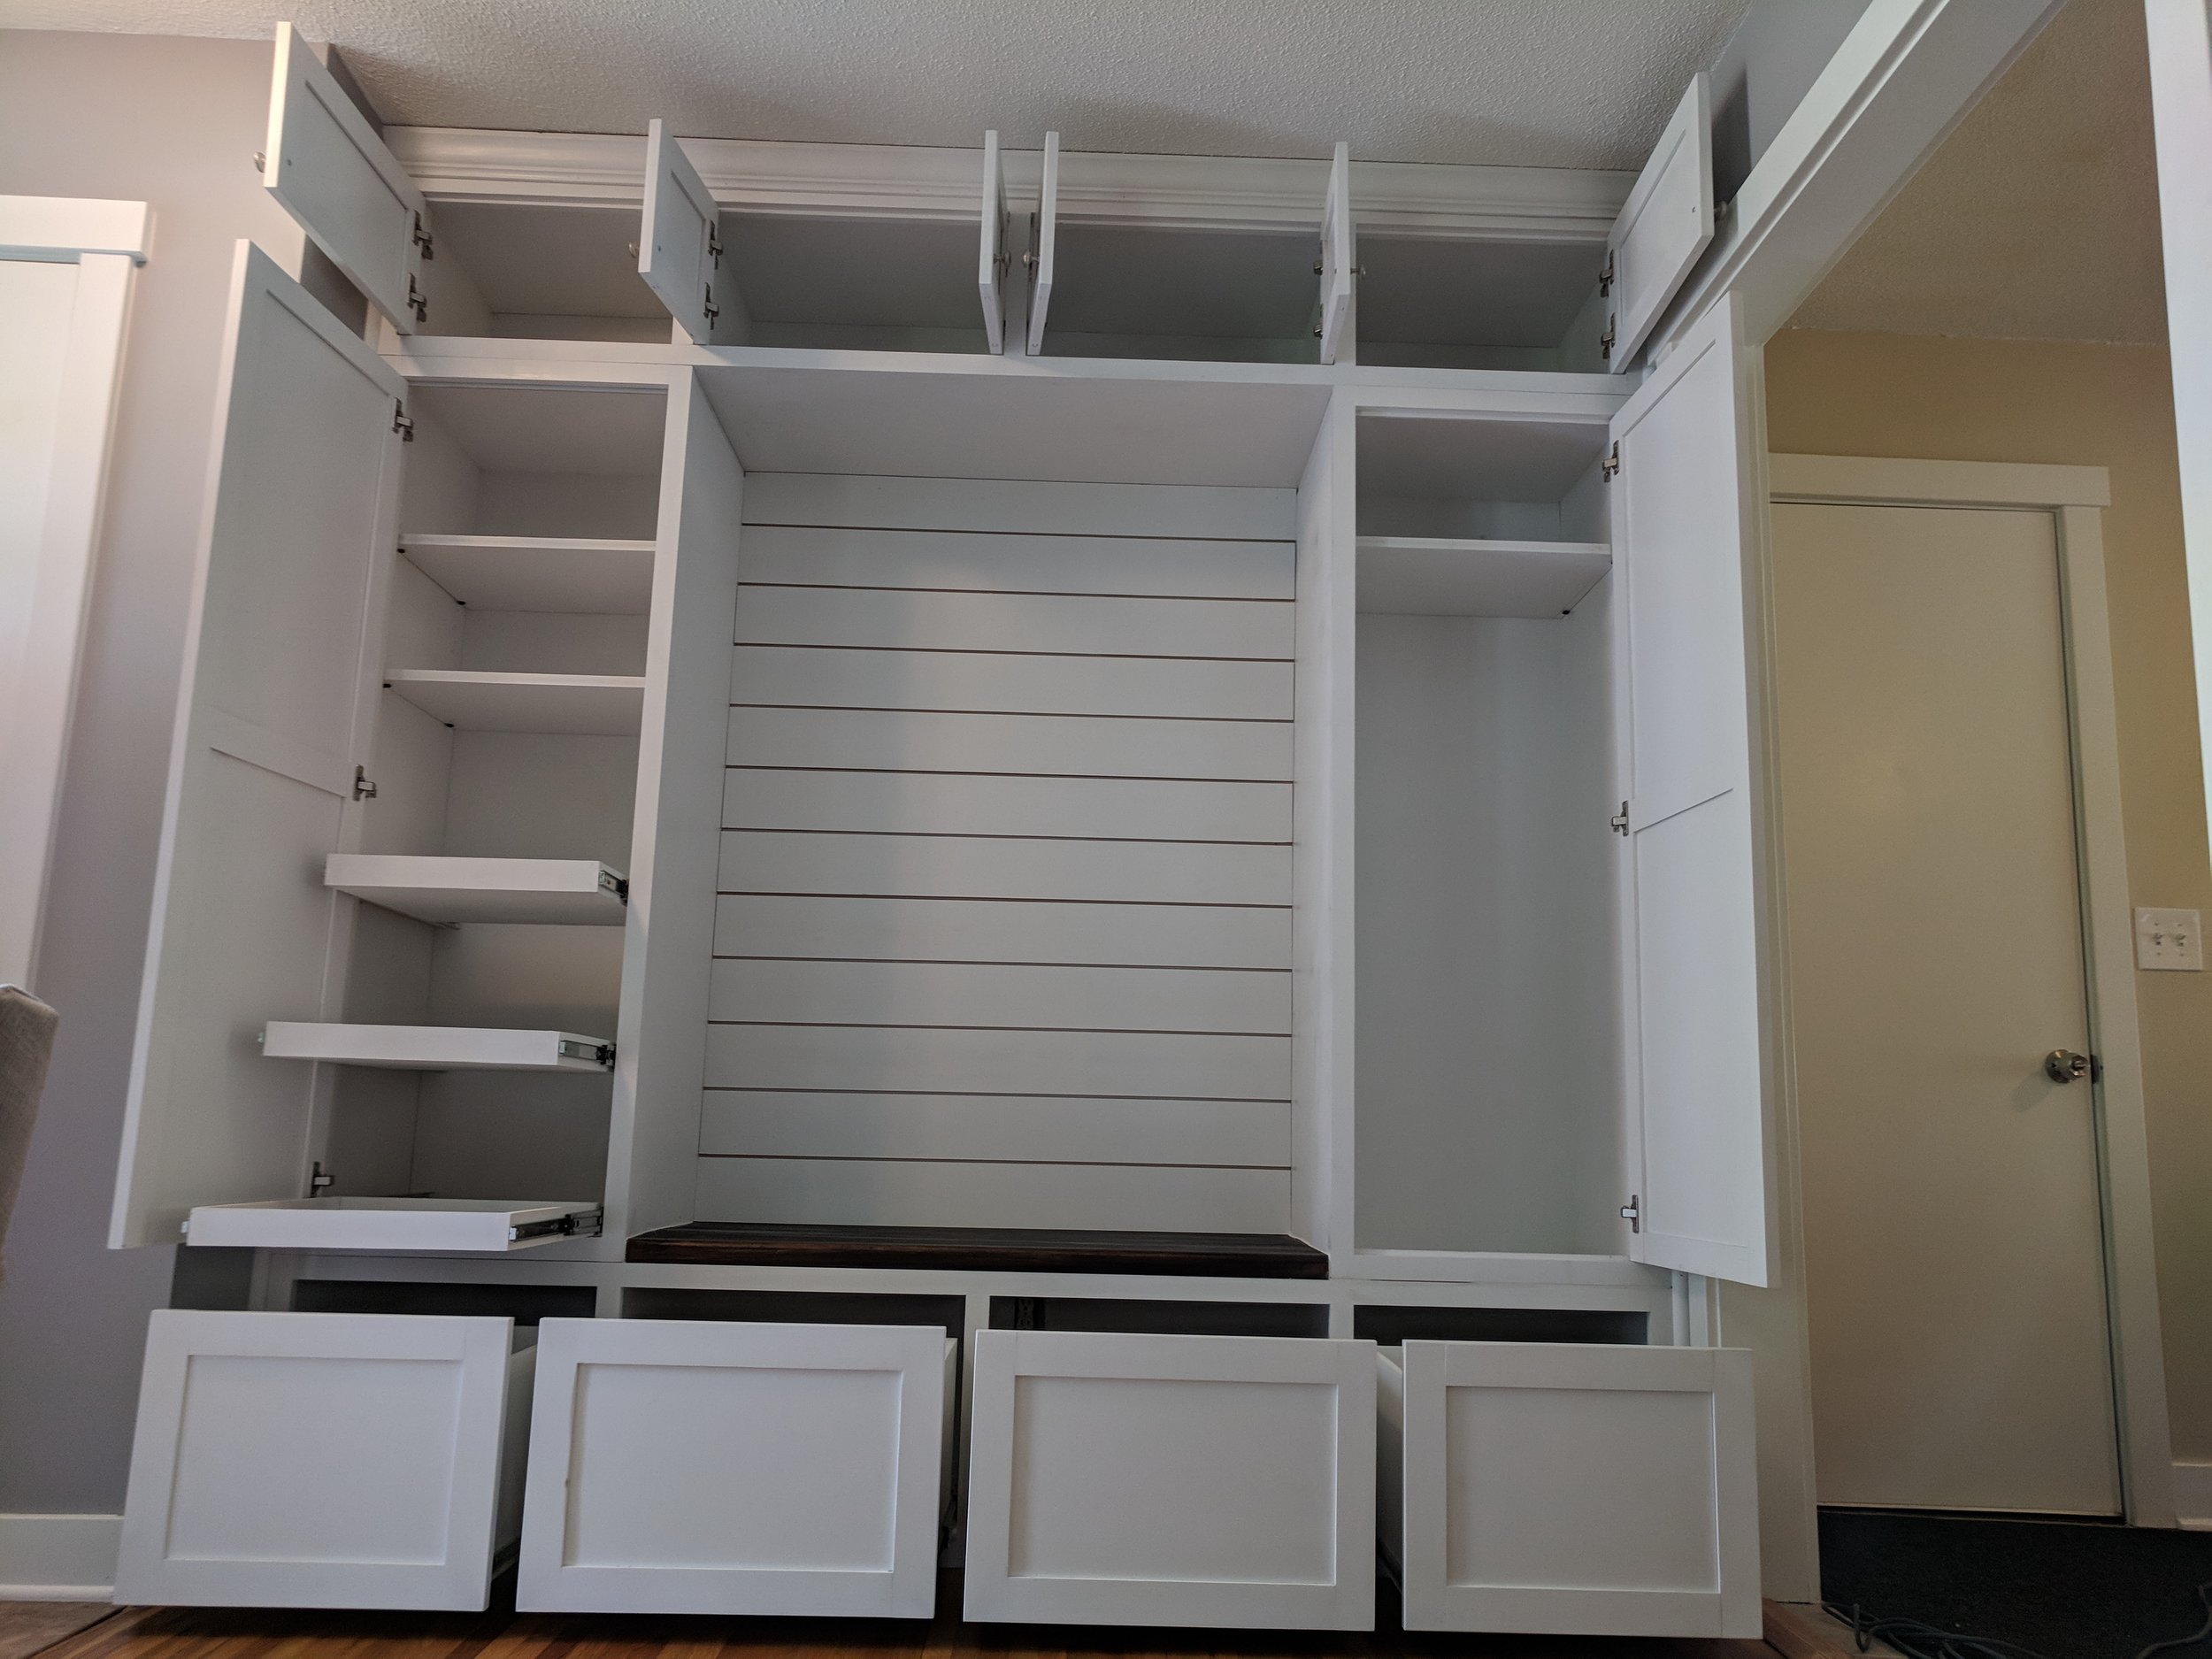 Custom design by customer including pullout drawers and adjustable shelves